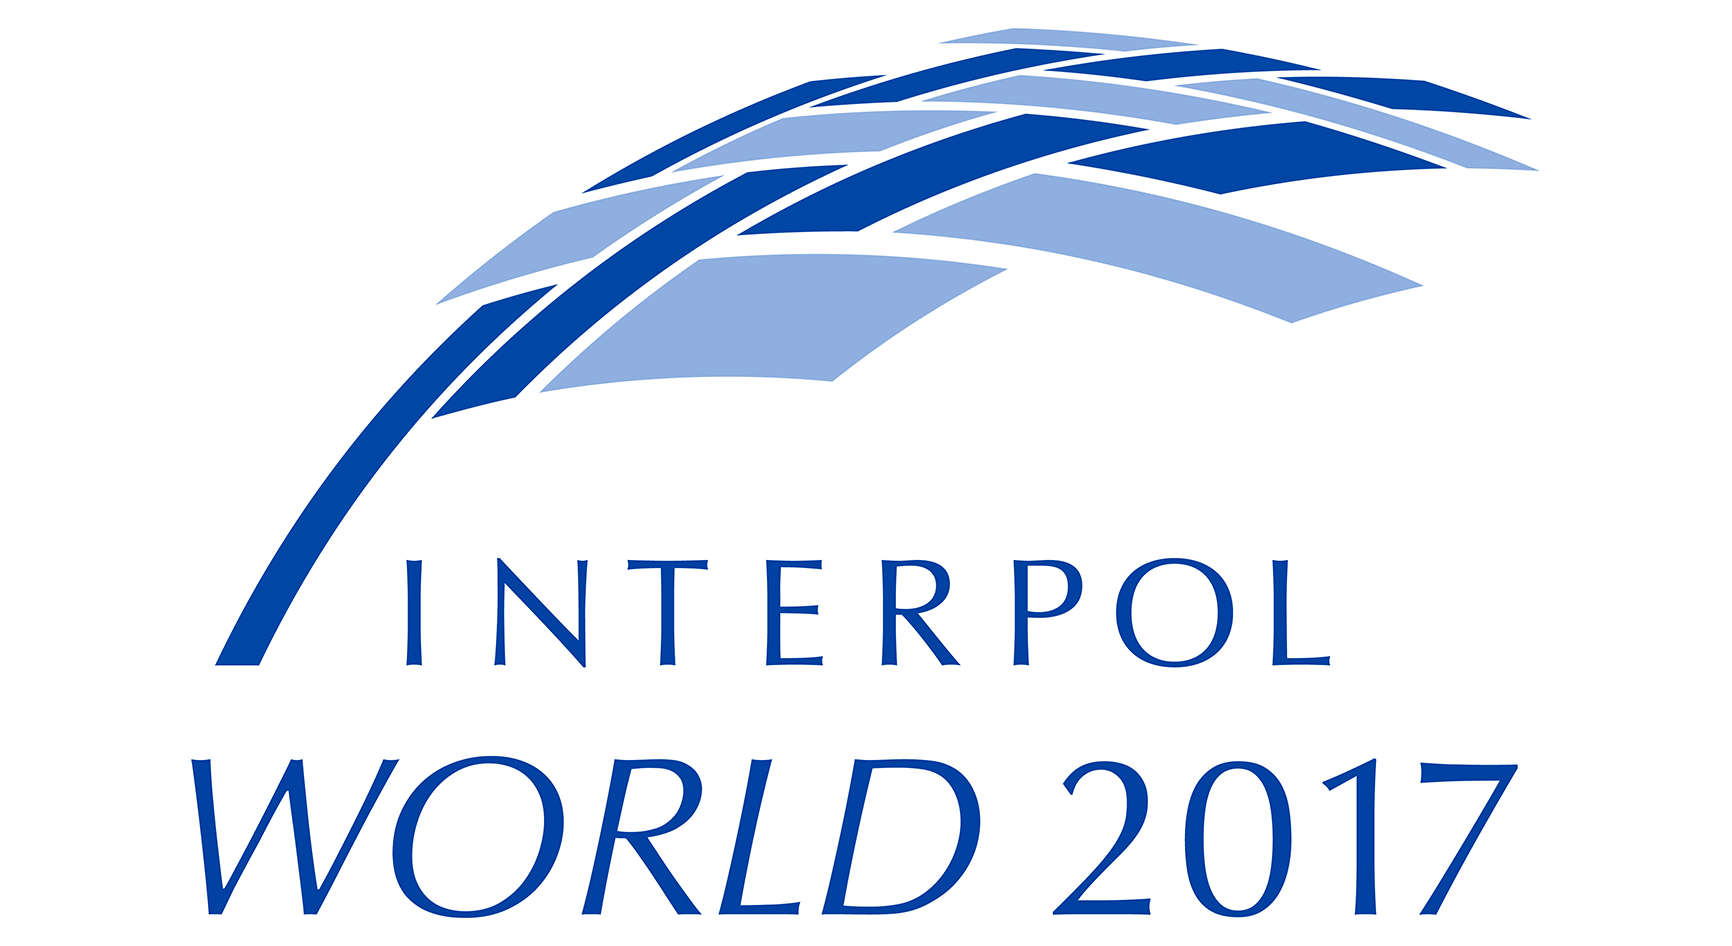 INTERPOL World 2017: Fostering Innovation for Future Security Challenges